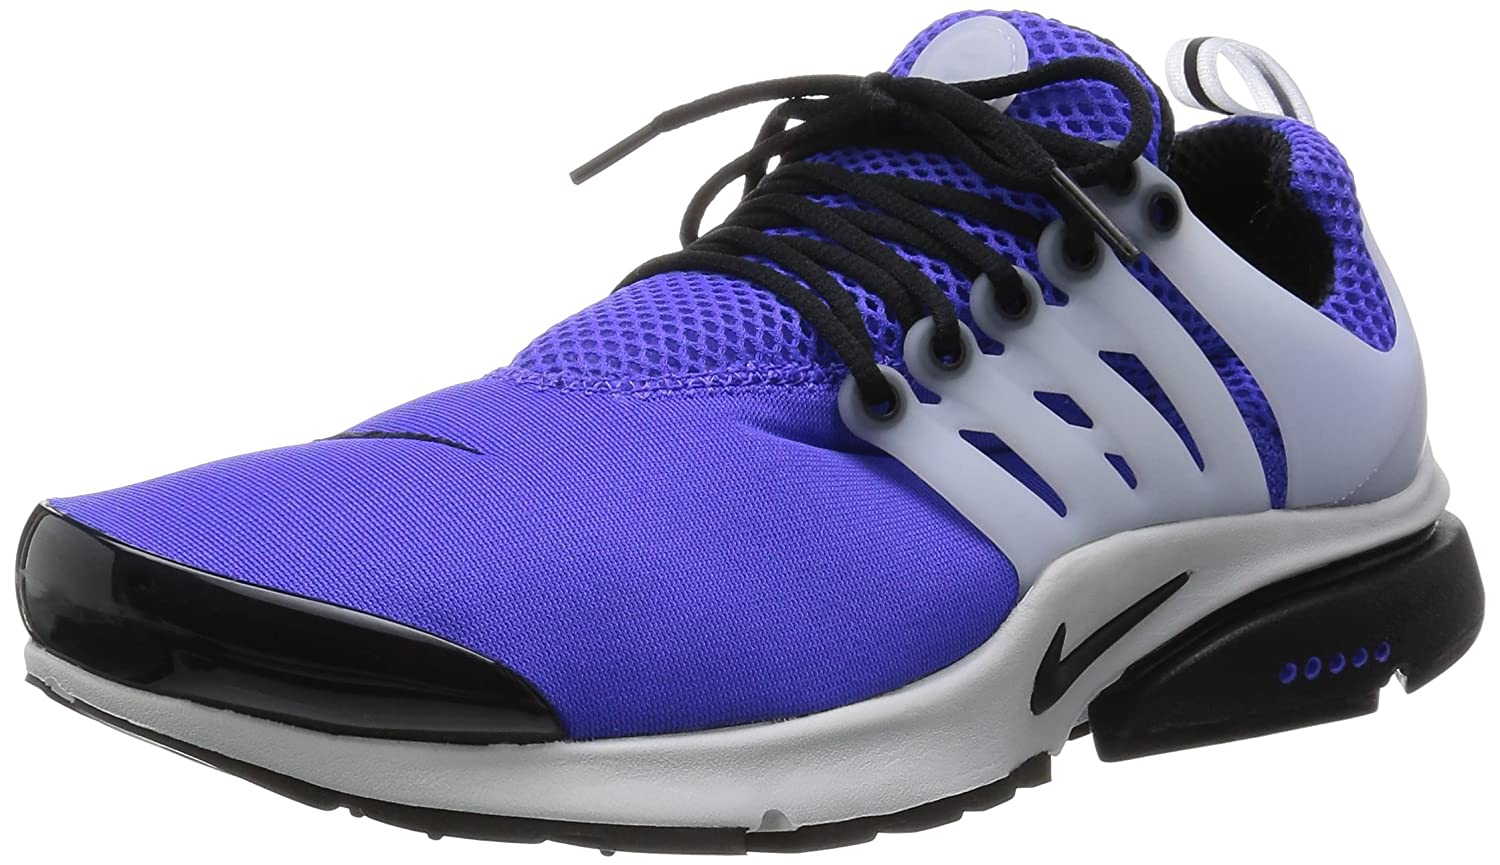 premium selection b1054 6b7e0 Amazon.com   Nike Men s Air Presto Running Shoe   Fashion Sneakers